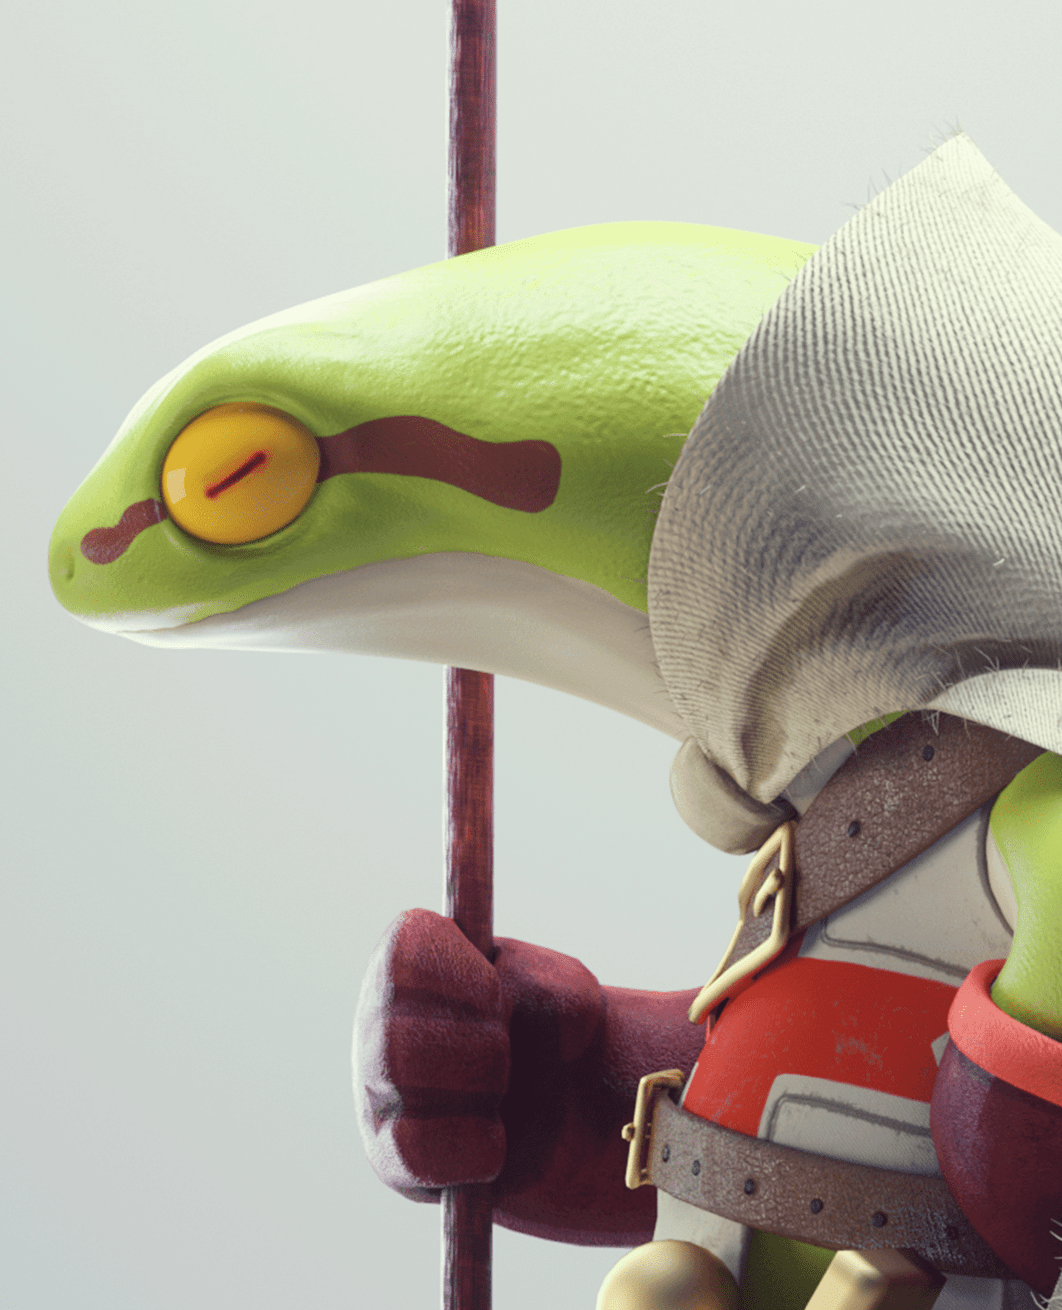 This 3D frog warrior guy is sweet.